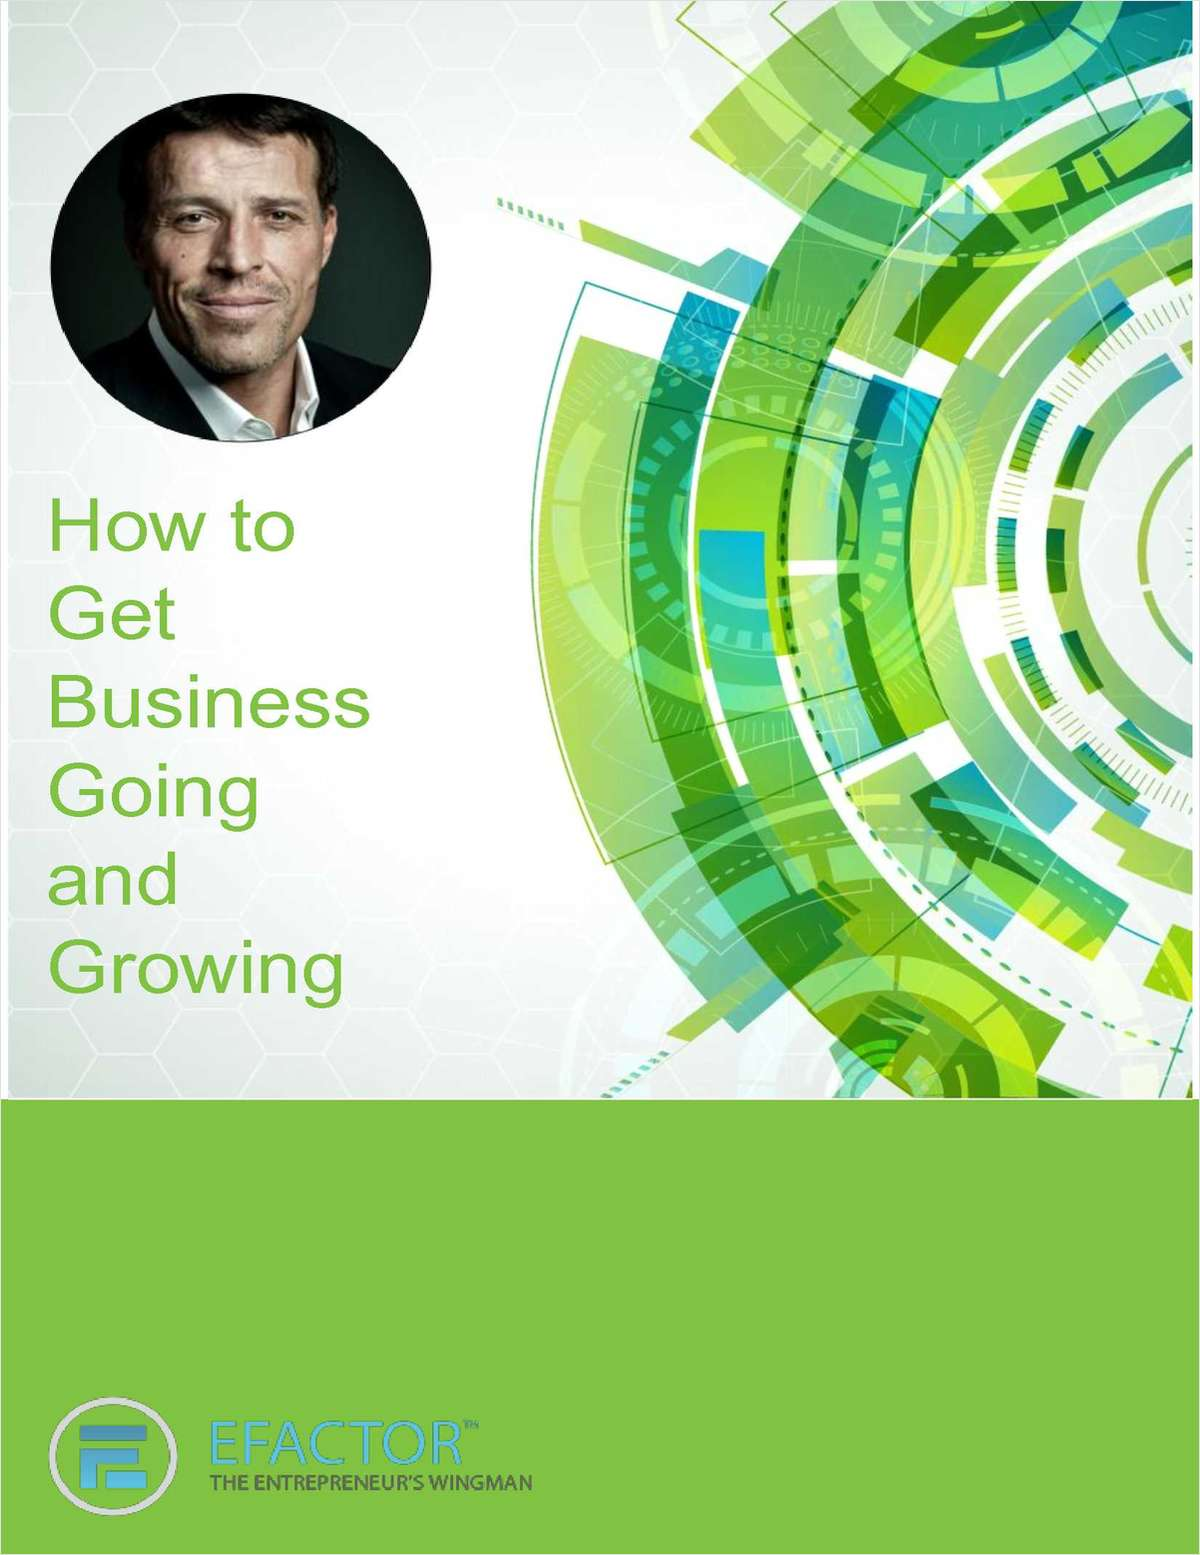 How to Get Business Going and Growing  - Tony Robbins Interviews Jay Abraham